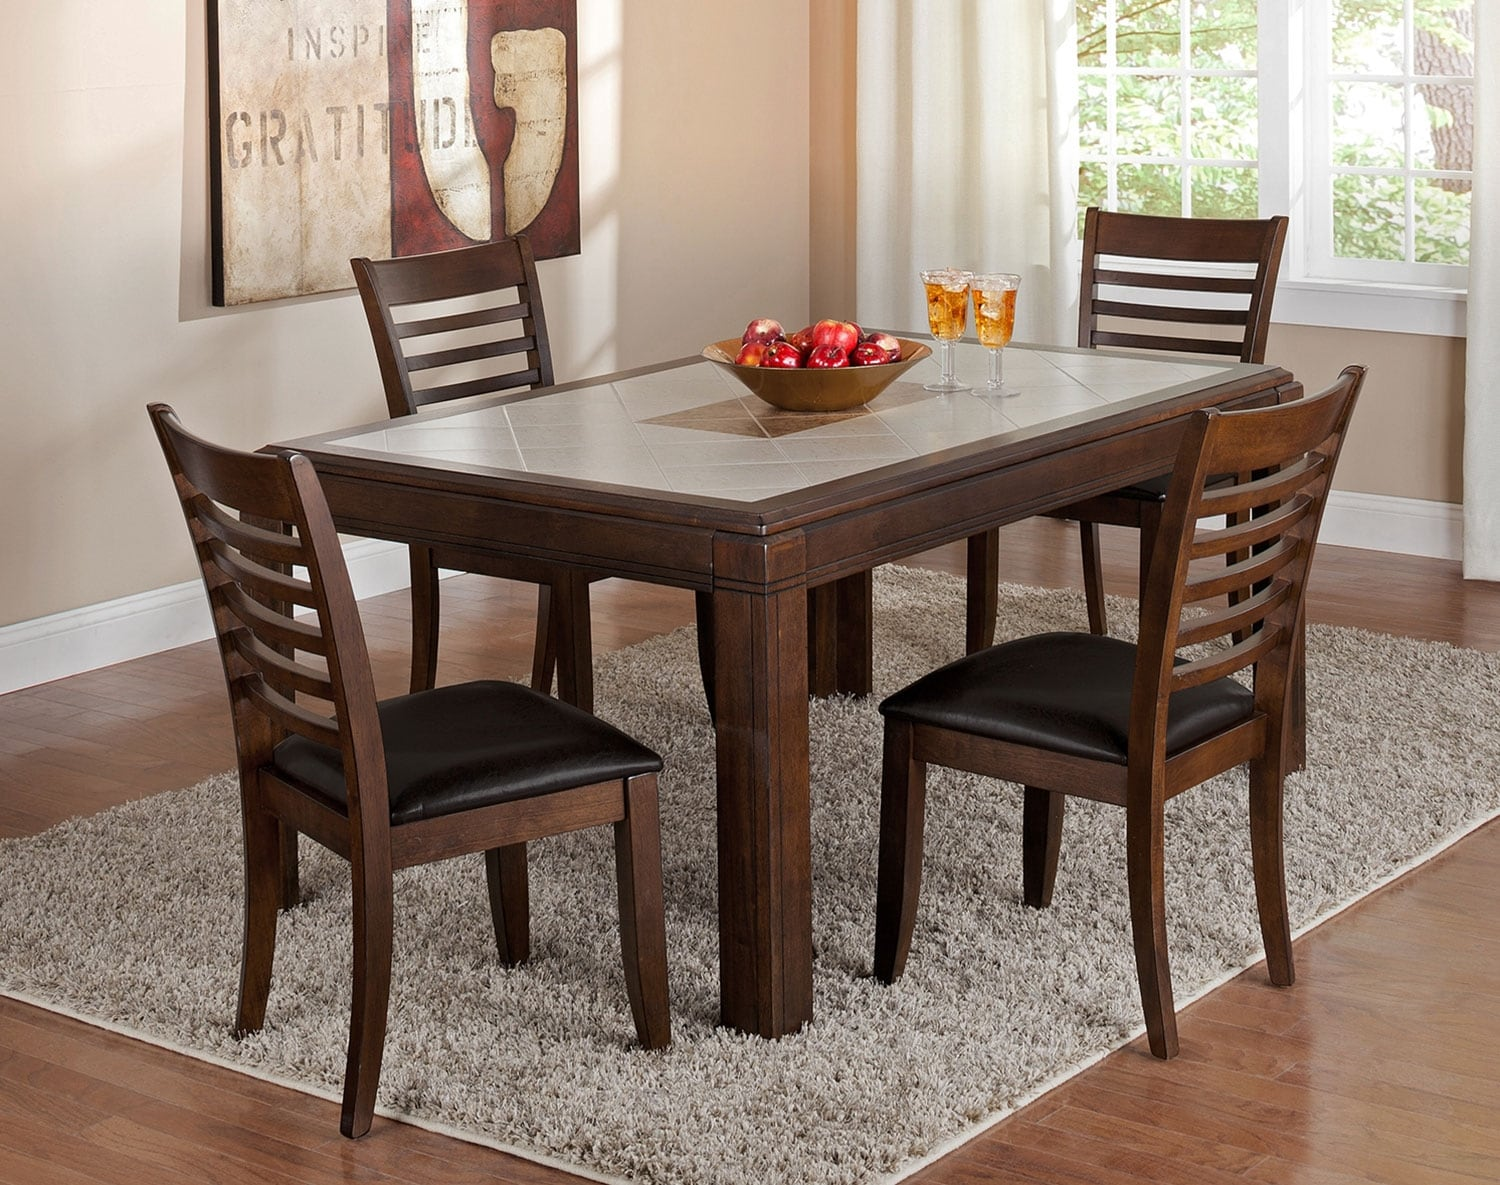 Dining Room Furniture - The Hillsboro Collection - Table